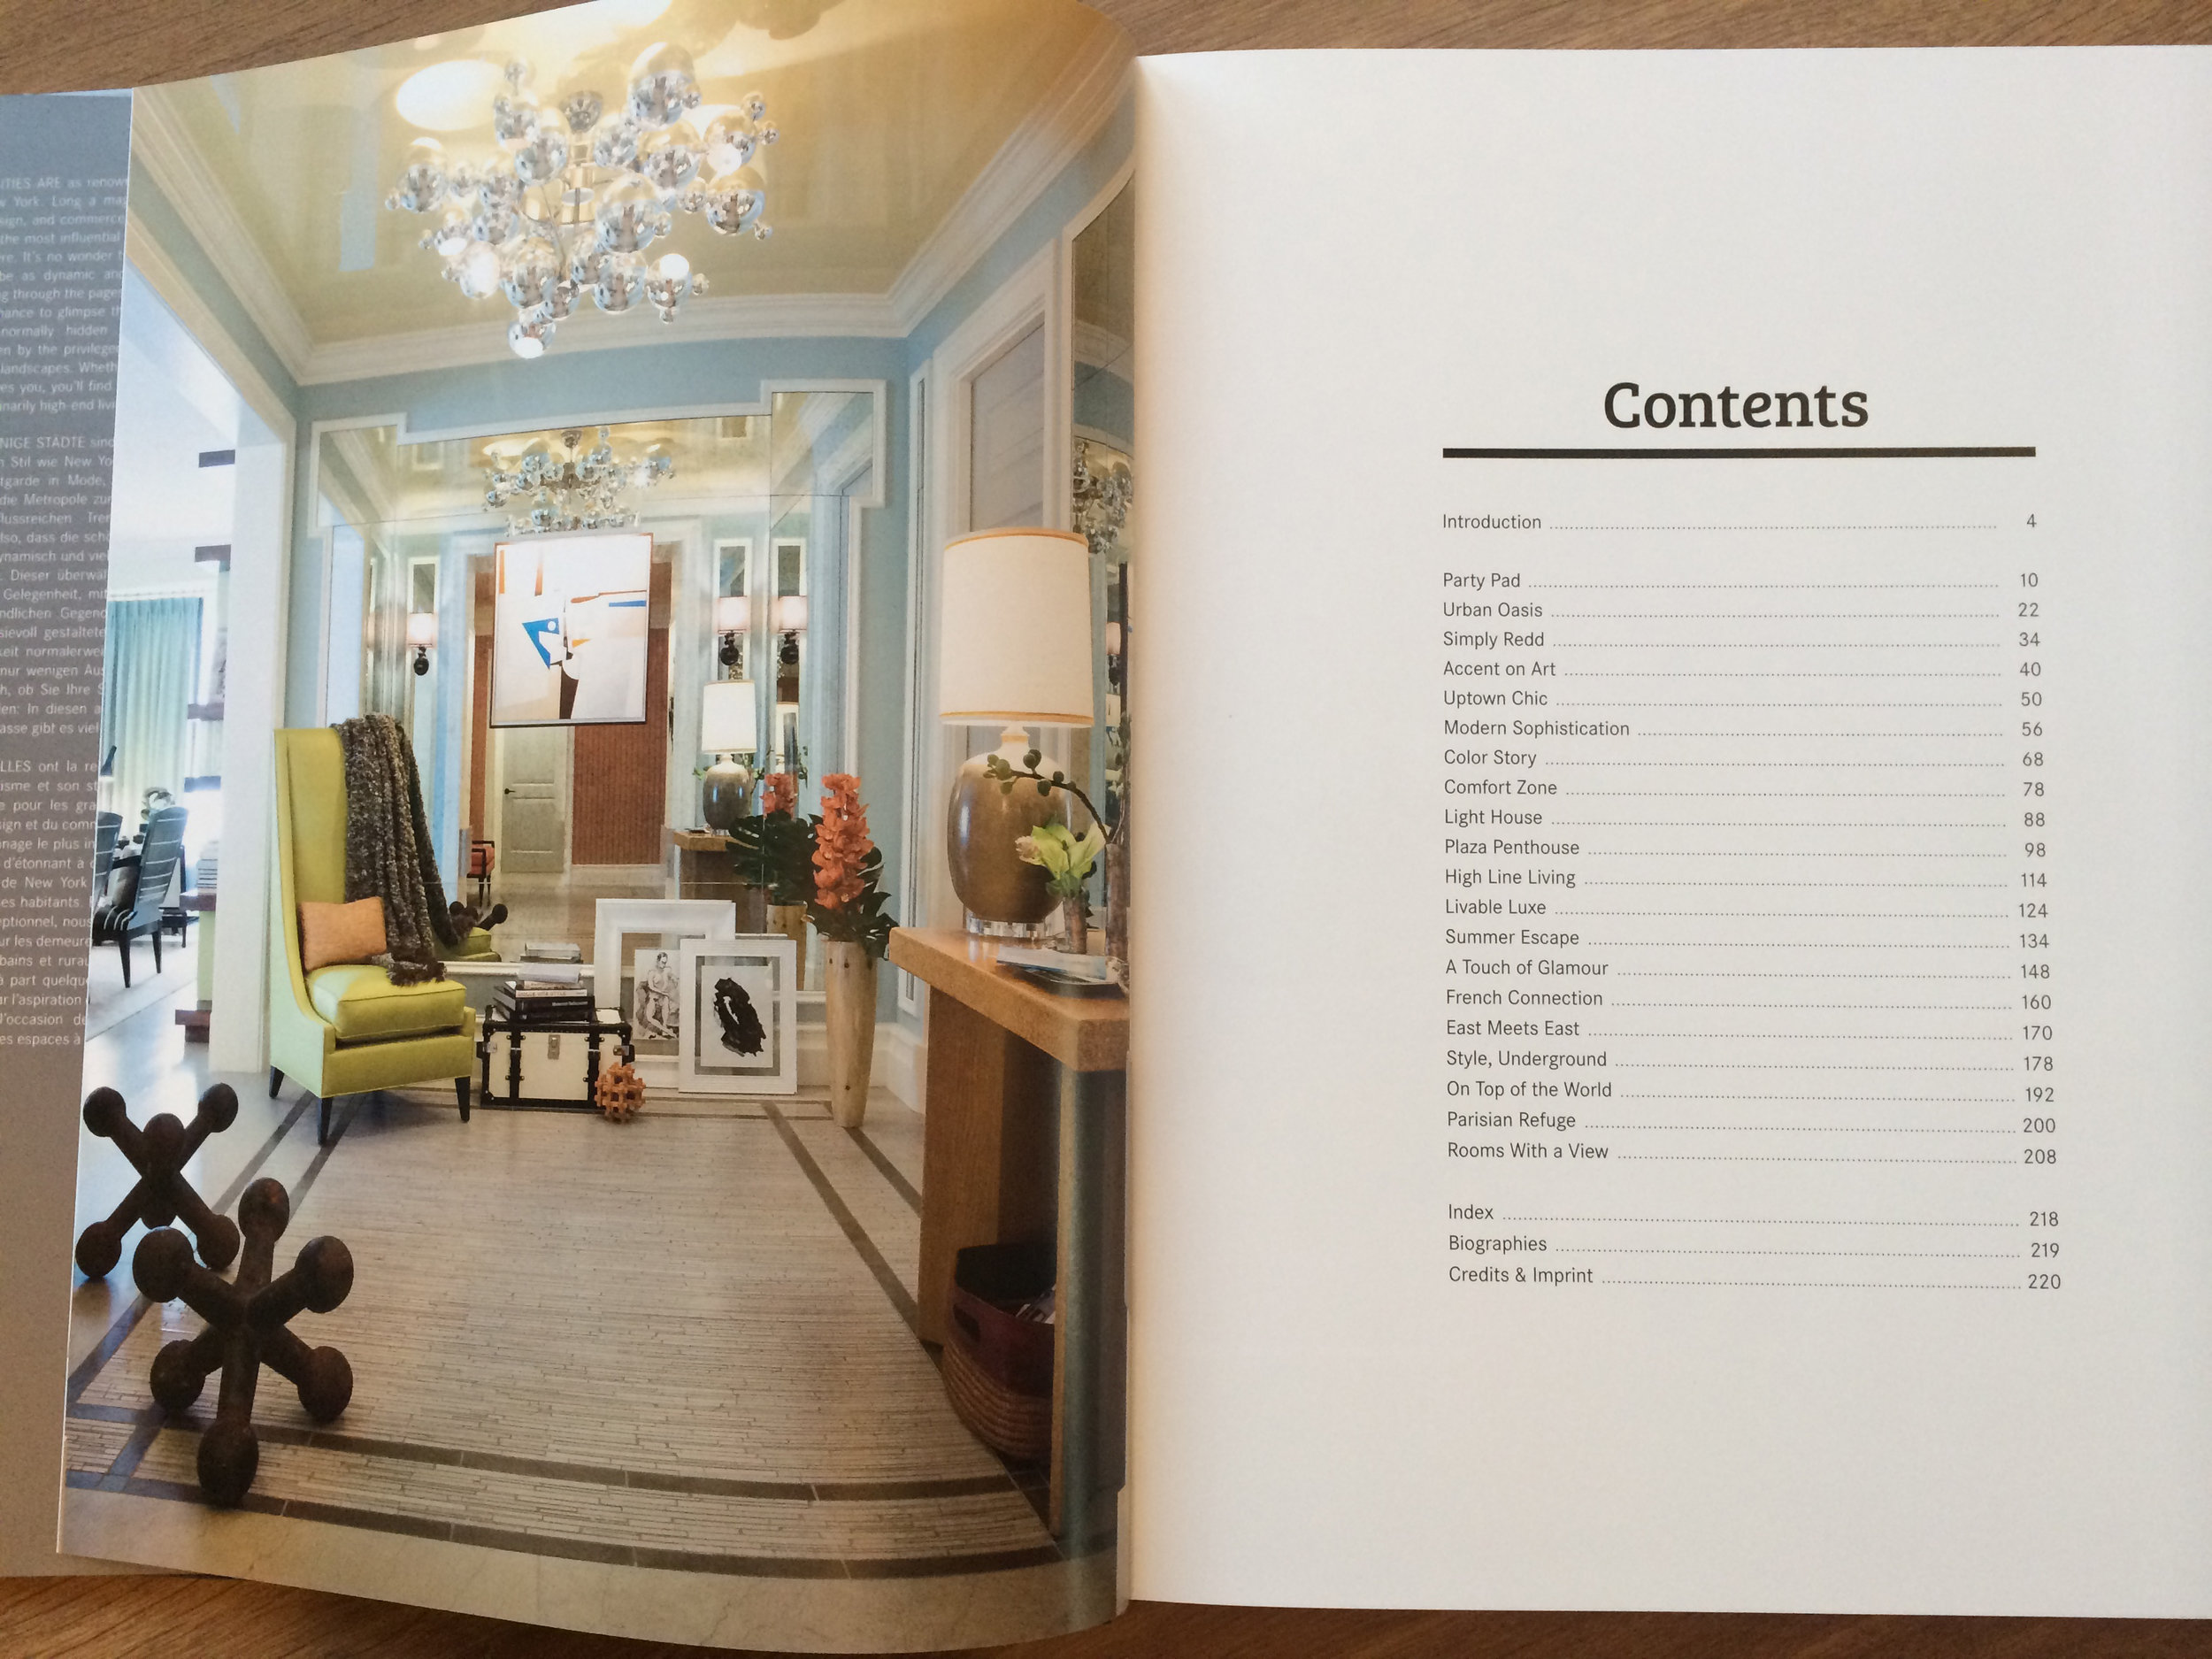 Living In Style New York Book 2014 - Tbl of Contents.JPG